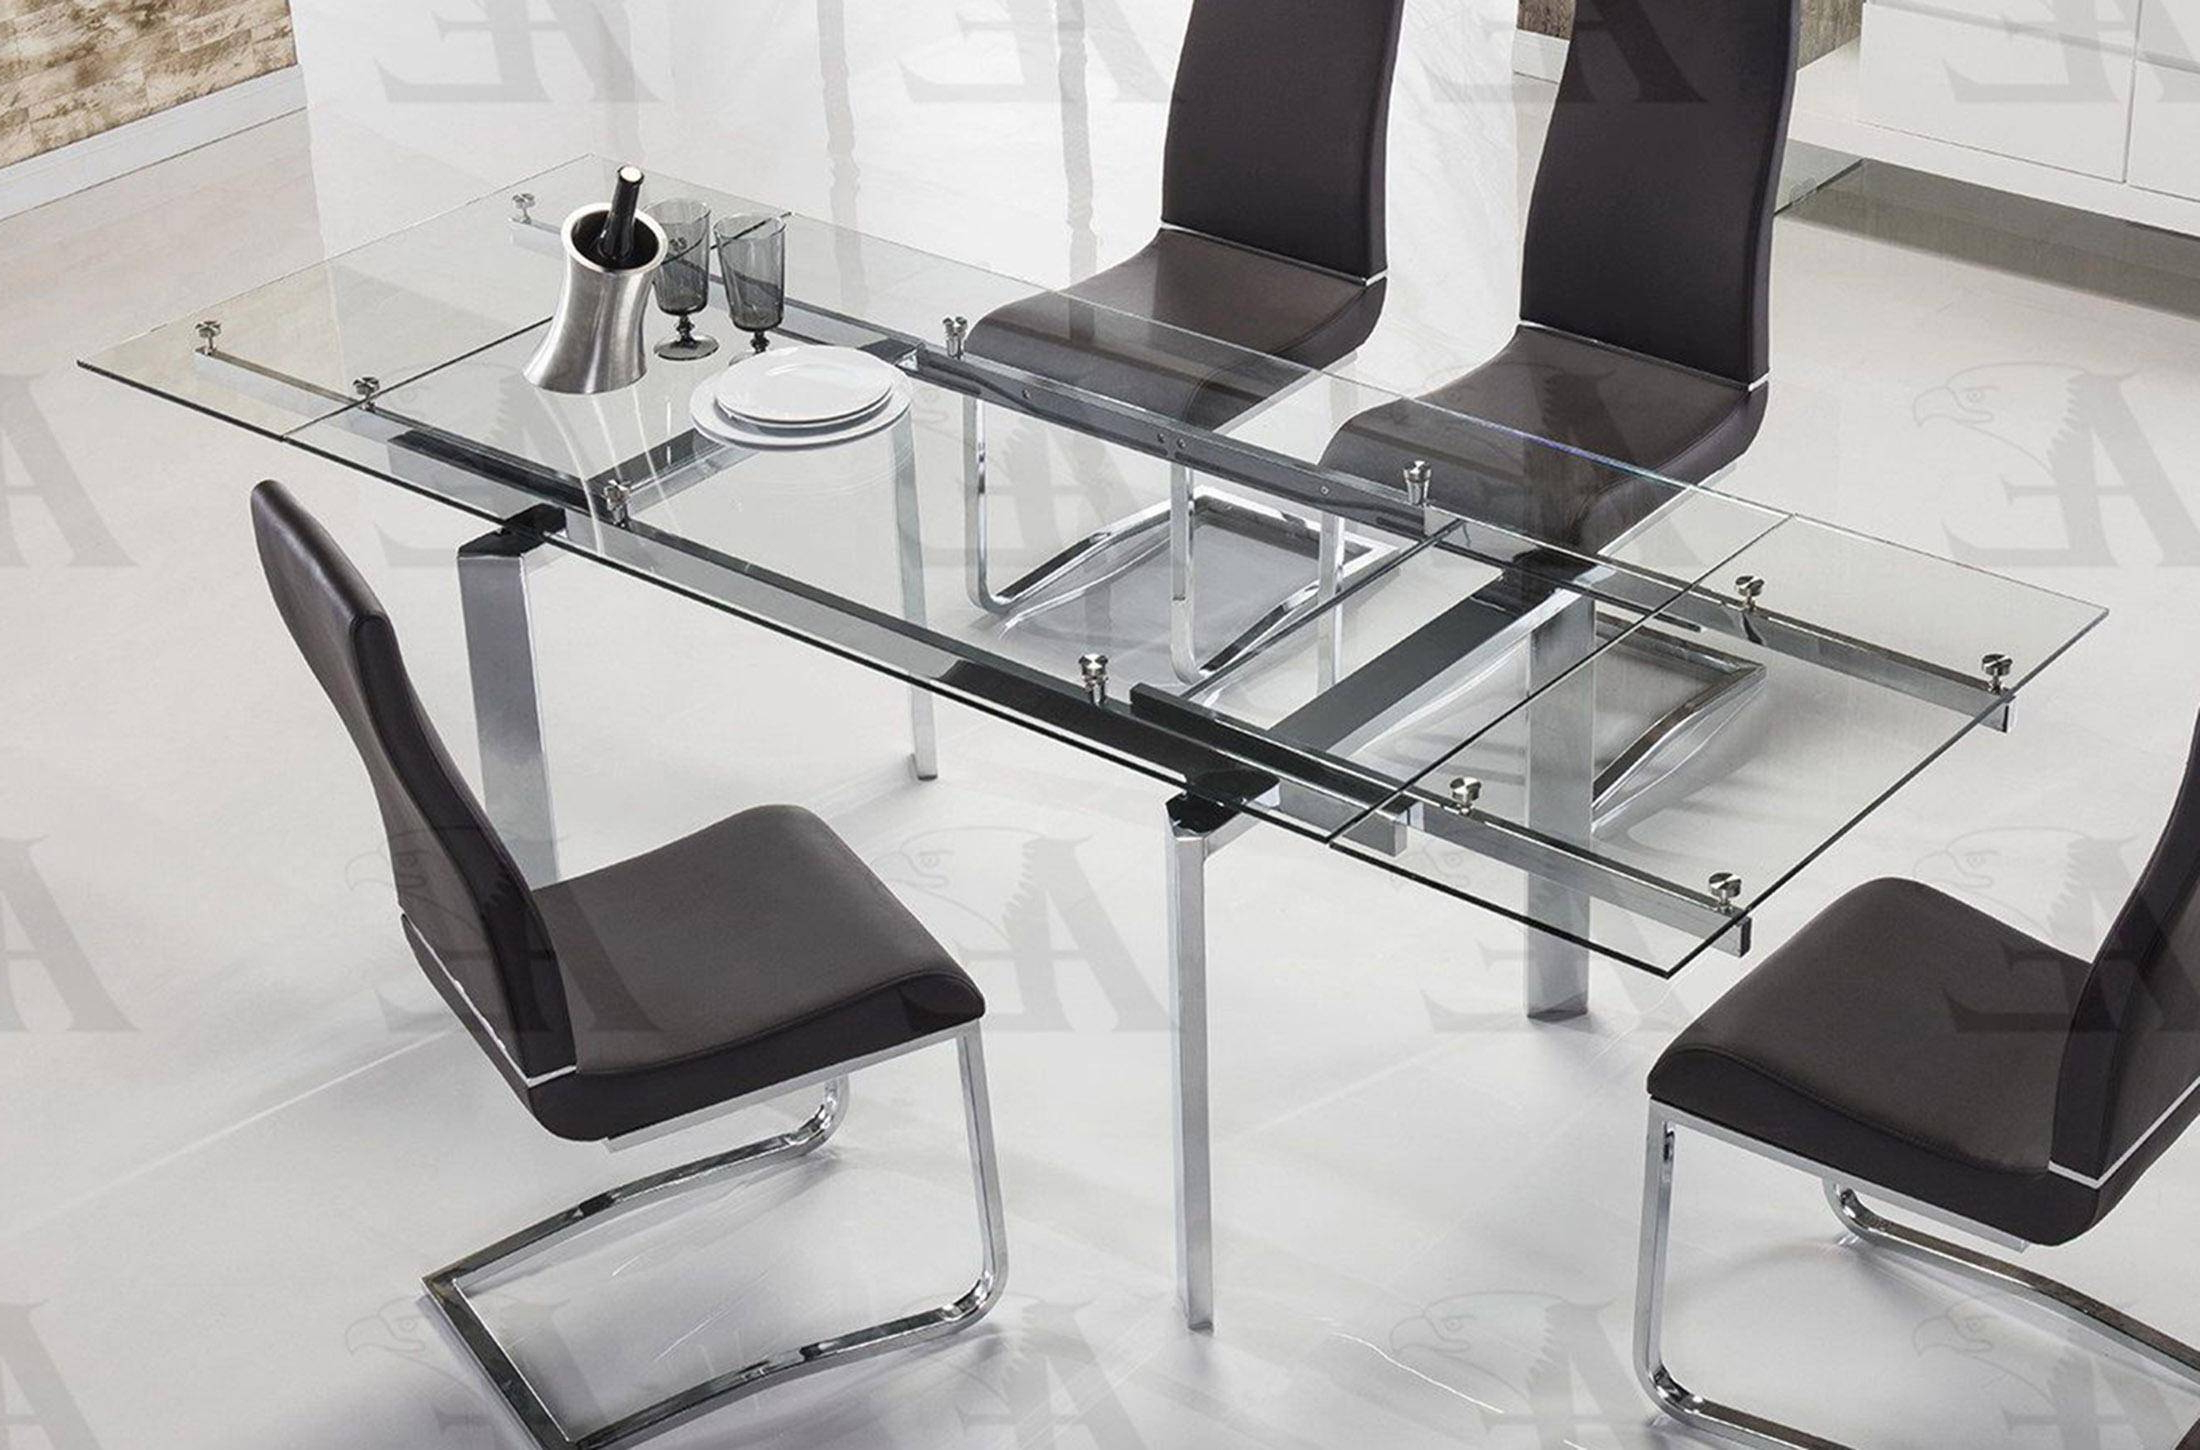 Chrome Dining Tables With Tempered Glass With Regard To Famous American Eagle Furniture Tl 1134s C Clear Glass Top Extendable Dining Table Chrome Legs (View 22 of 30)